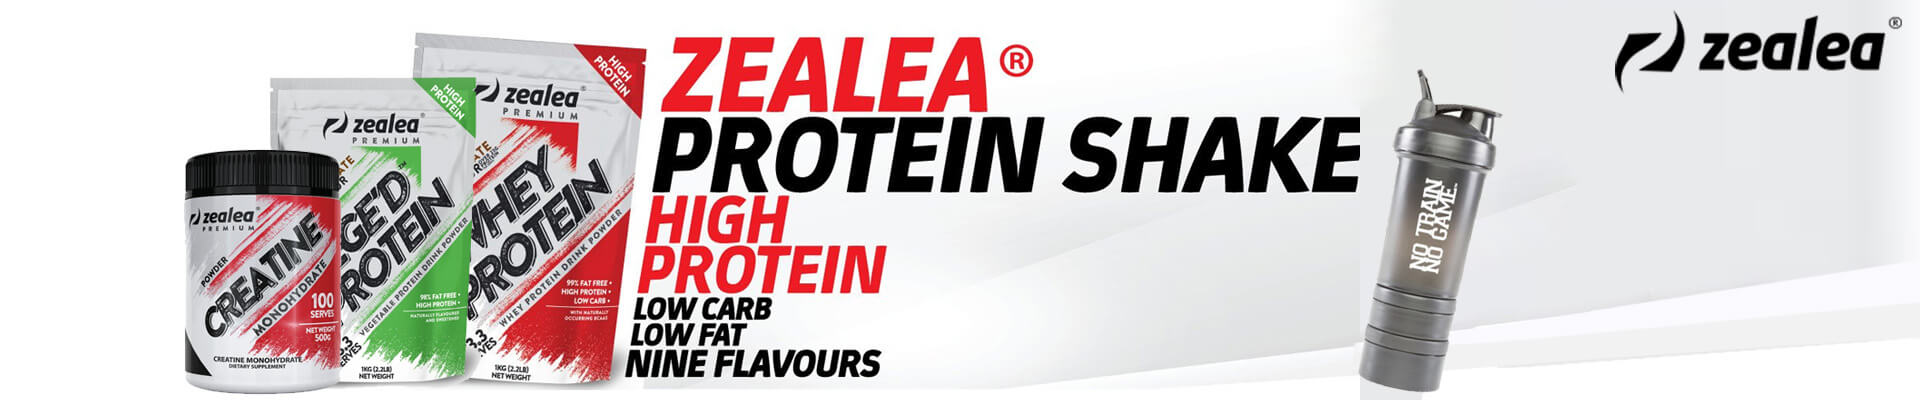 Zealea Whey & Natural Proteins & Supplements